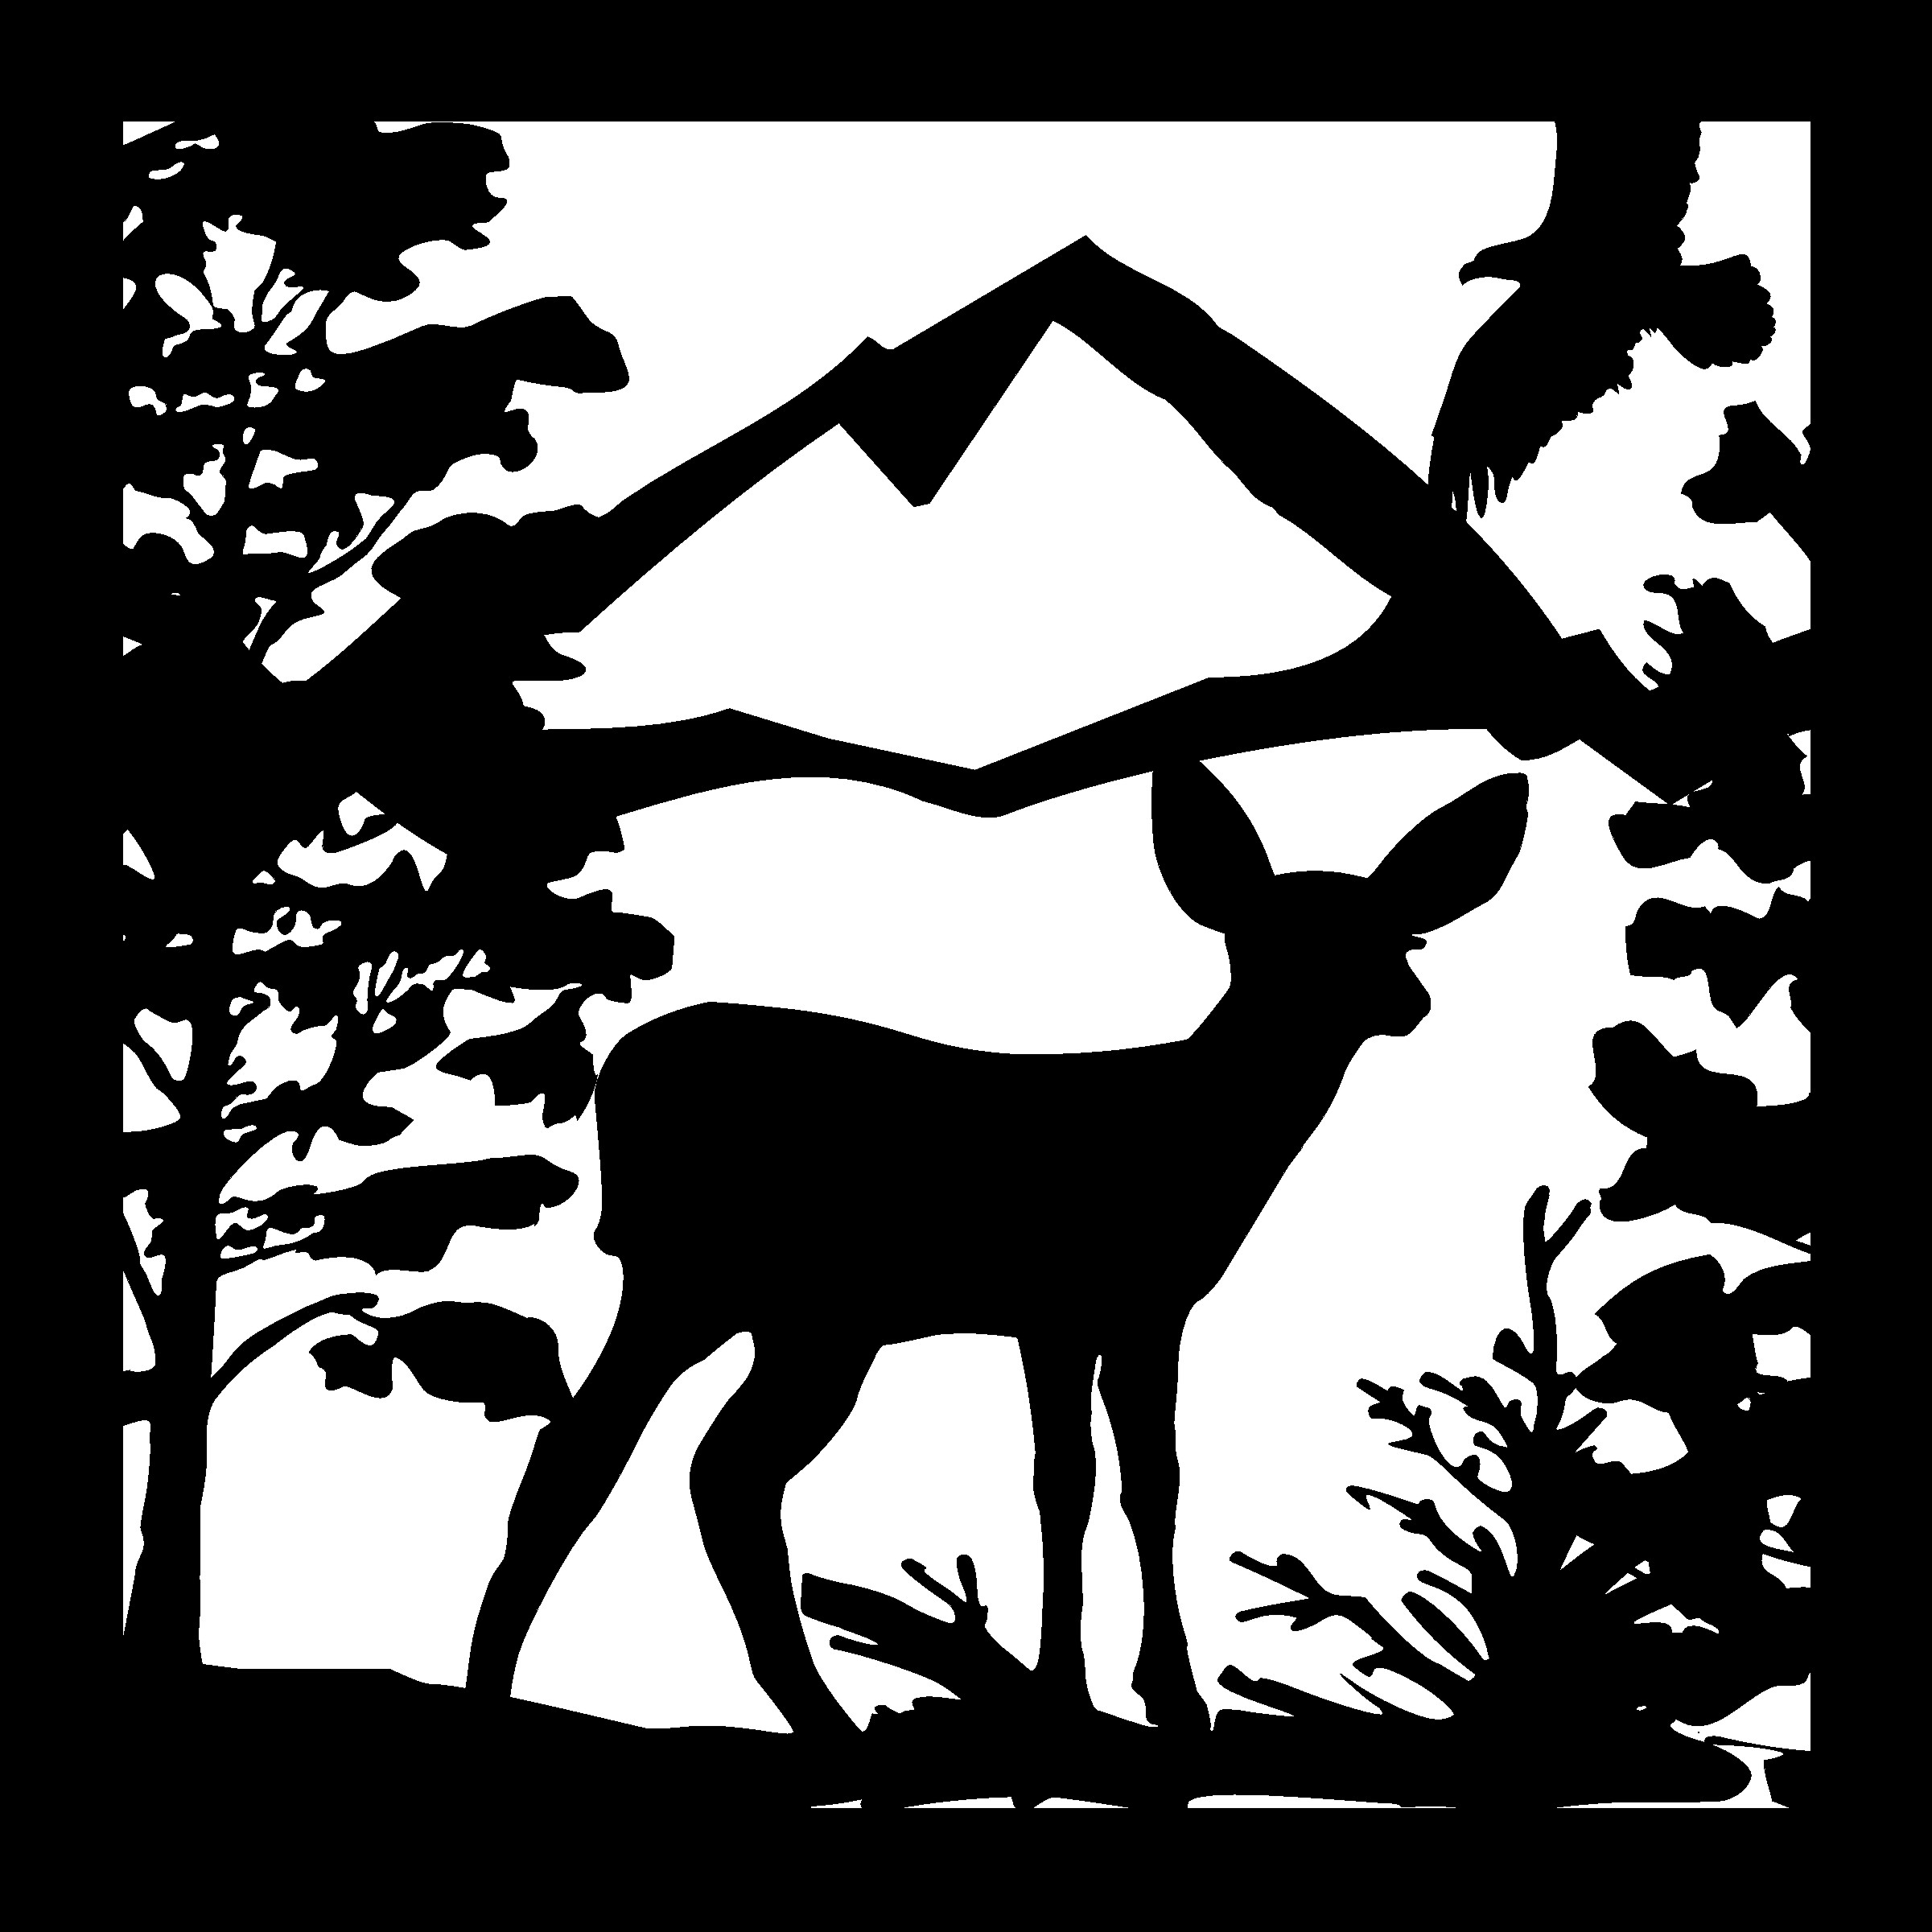 24 X 24 Deer Fawn Eagle Mountains Plasma Art Free DXF File